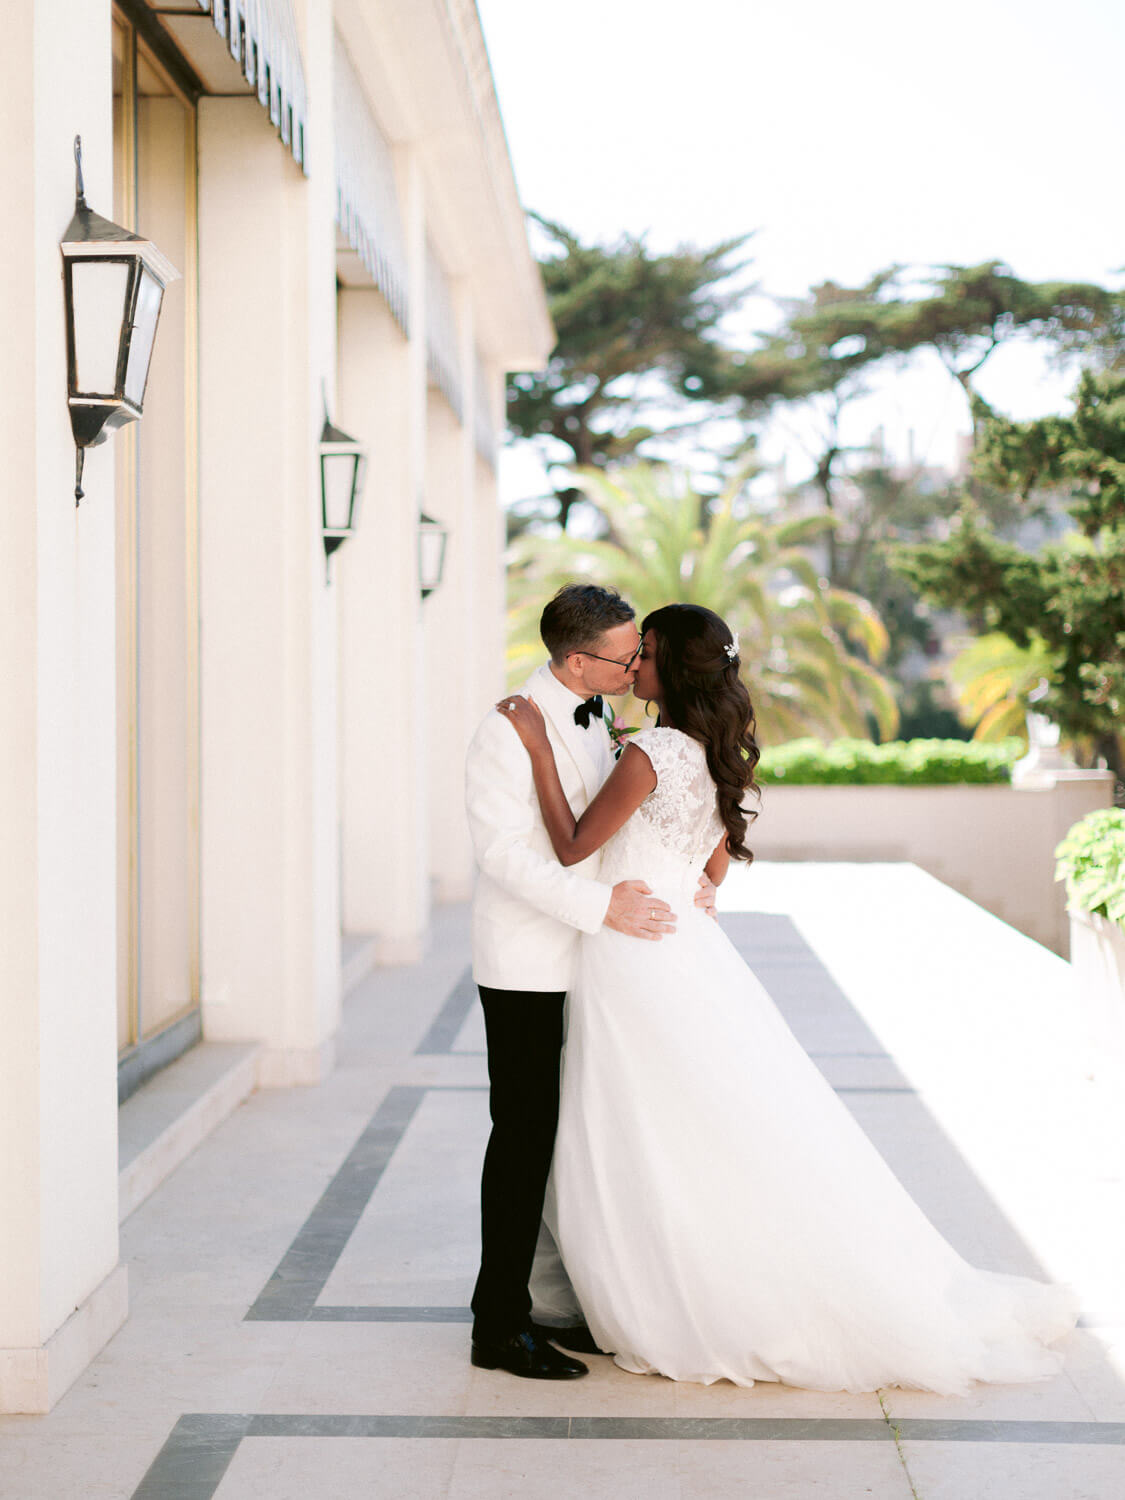 glamorous newlywed's kiss in Hotel Palacio Estoril by Portugal Wedding Photographer